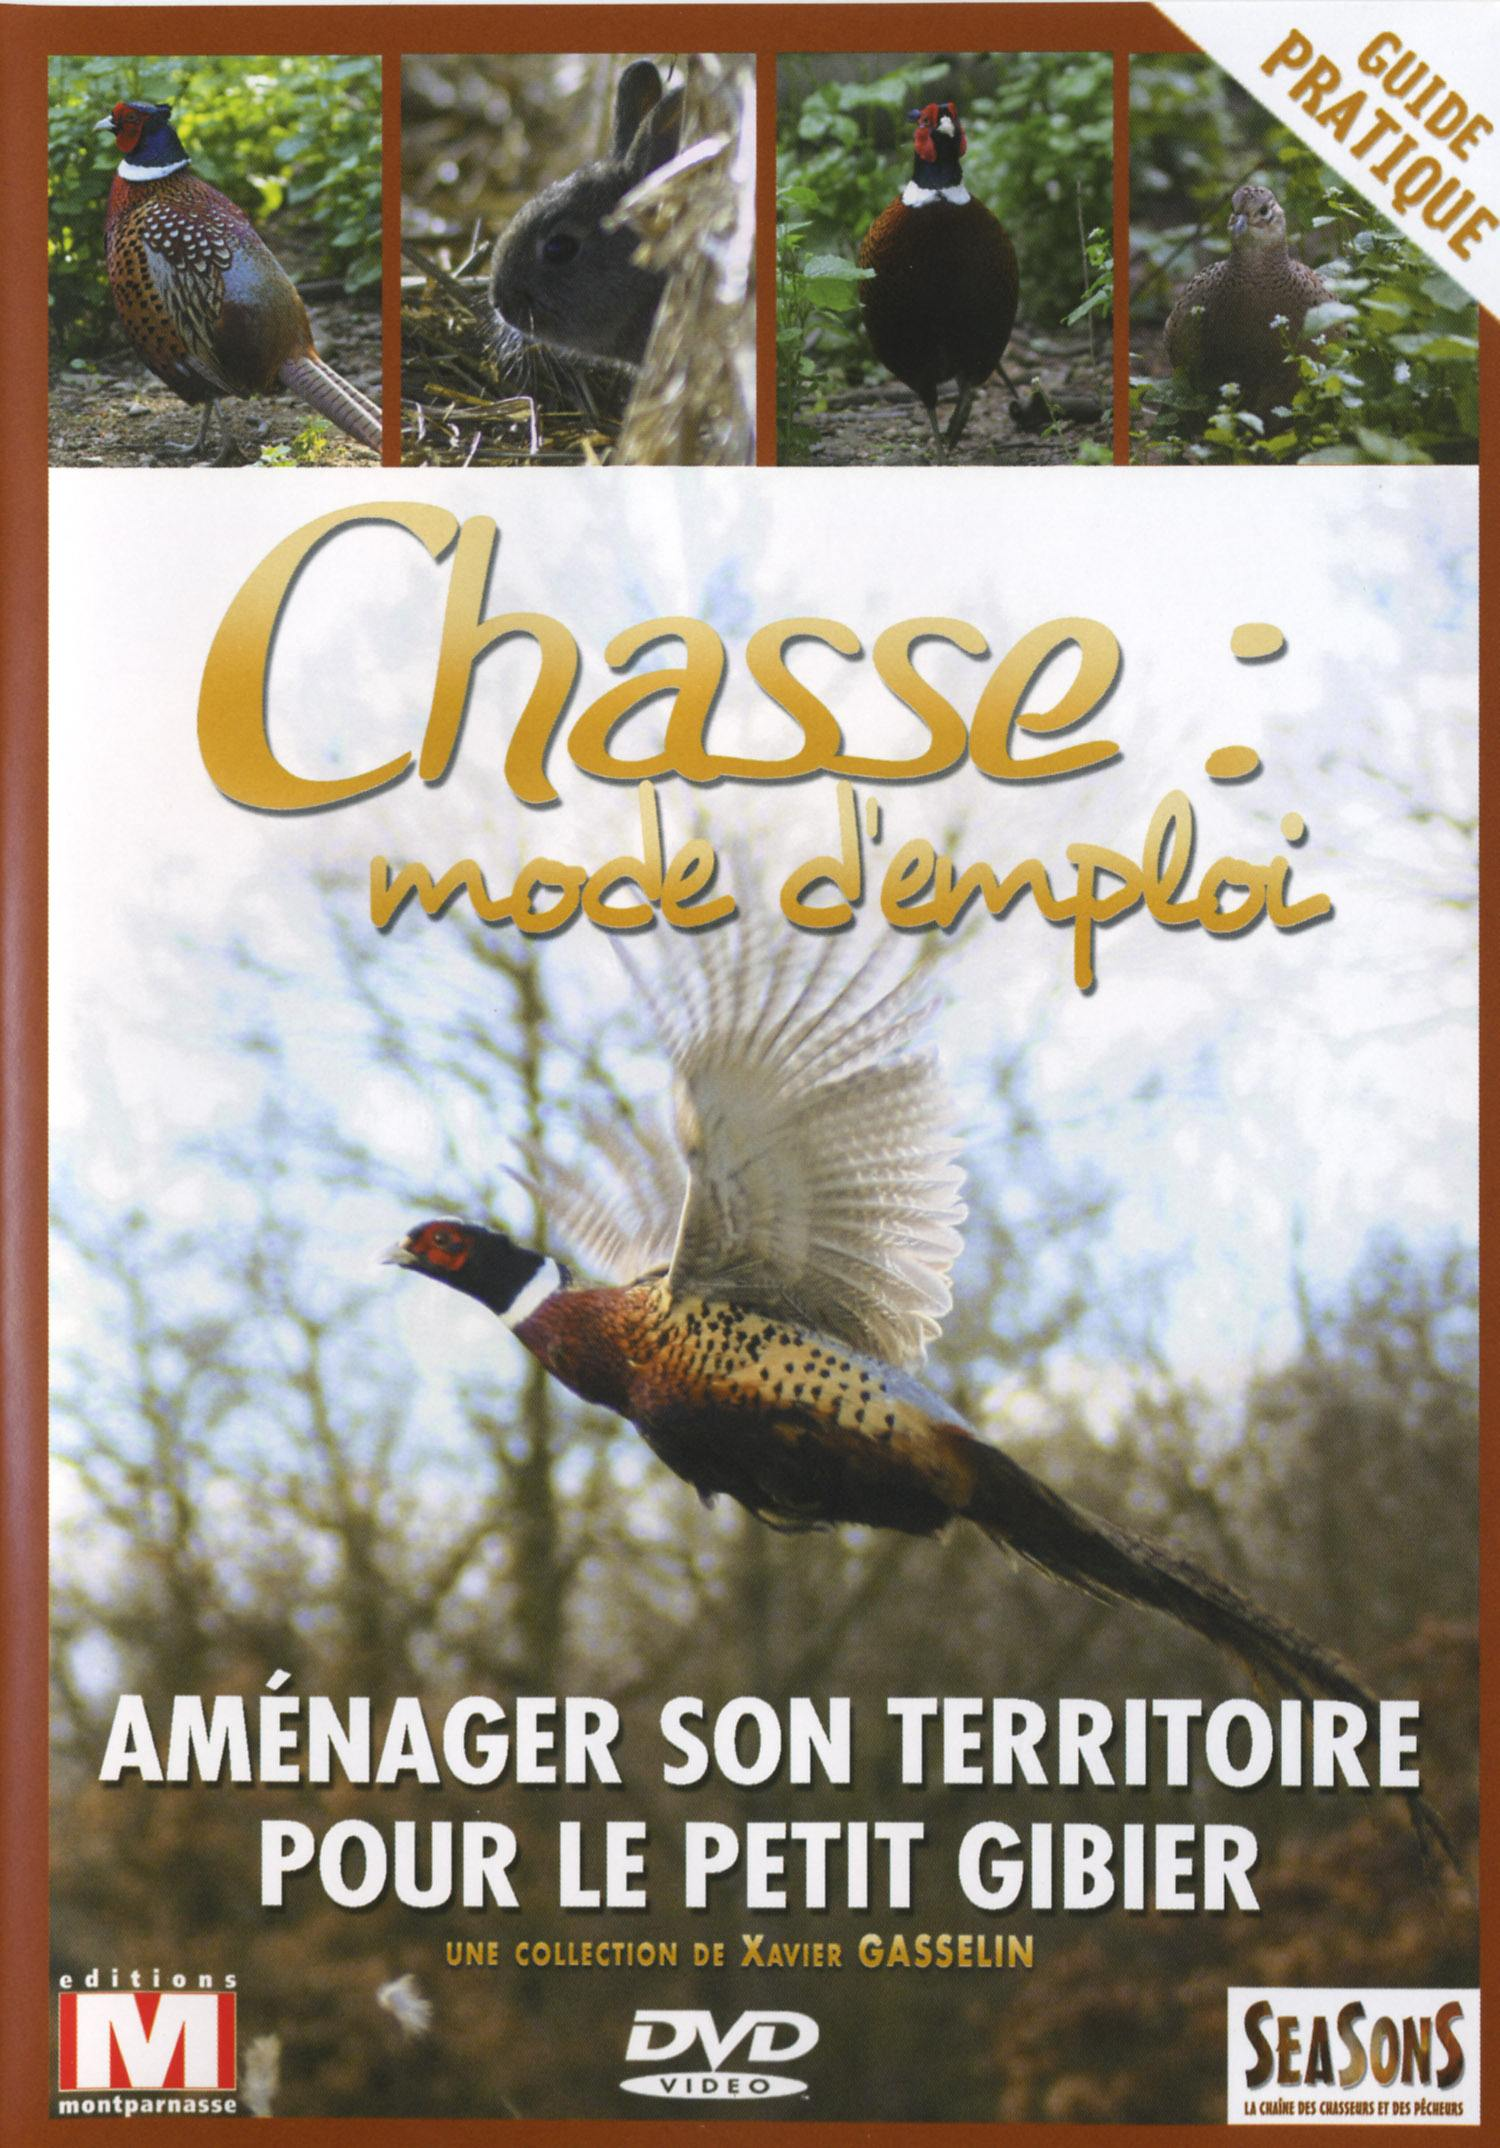 Amenager territoire pt gibier  chasse mode d'emploi - dvd